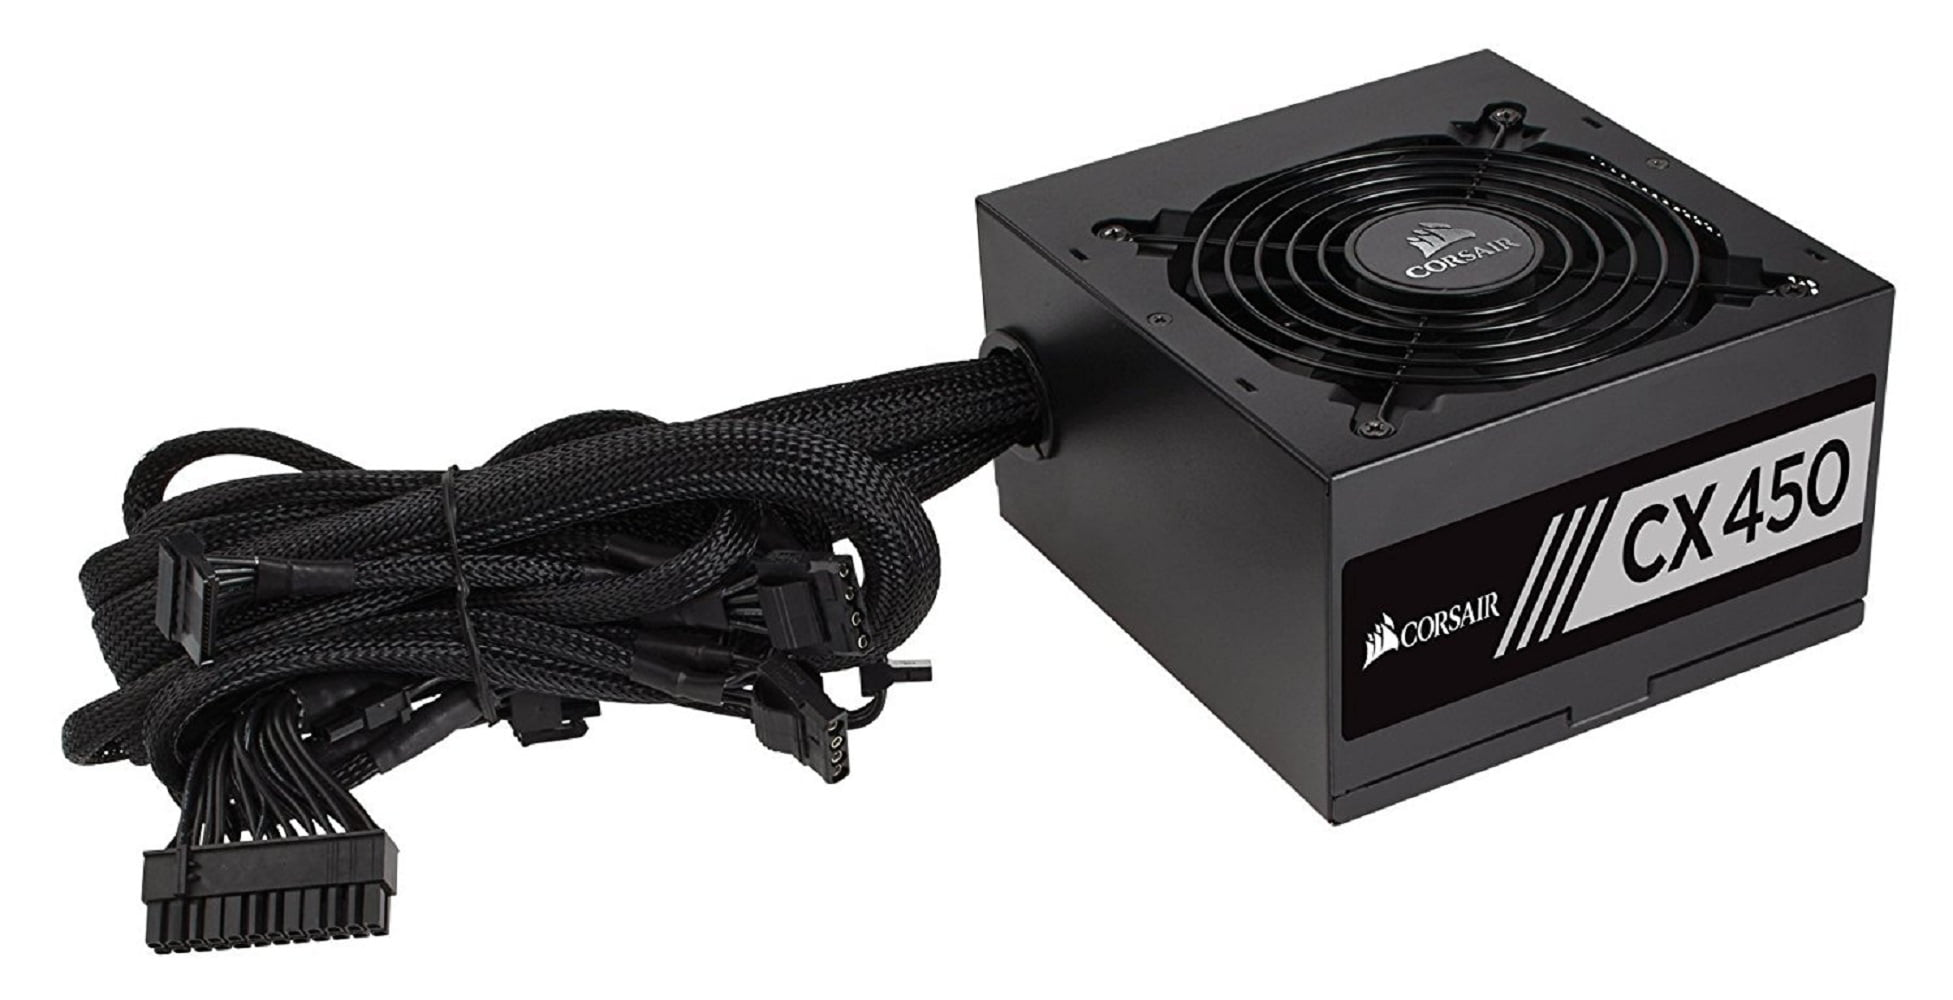 Corsair CX Series 450W 80+ Bronze Power Supply